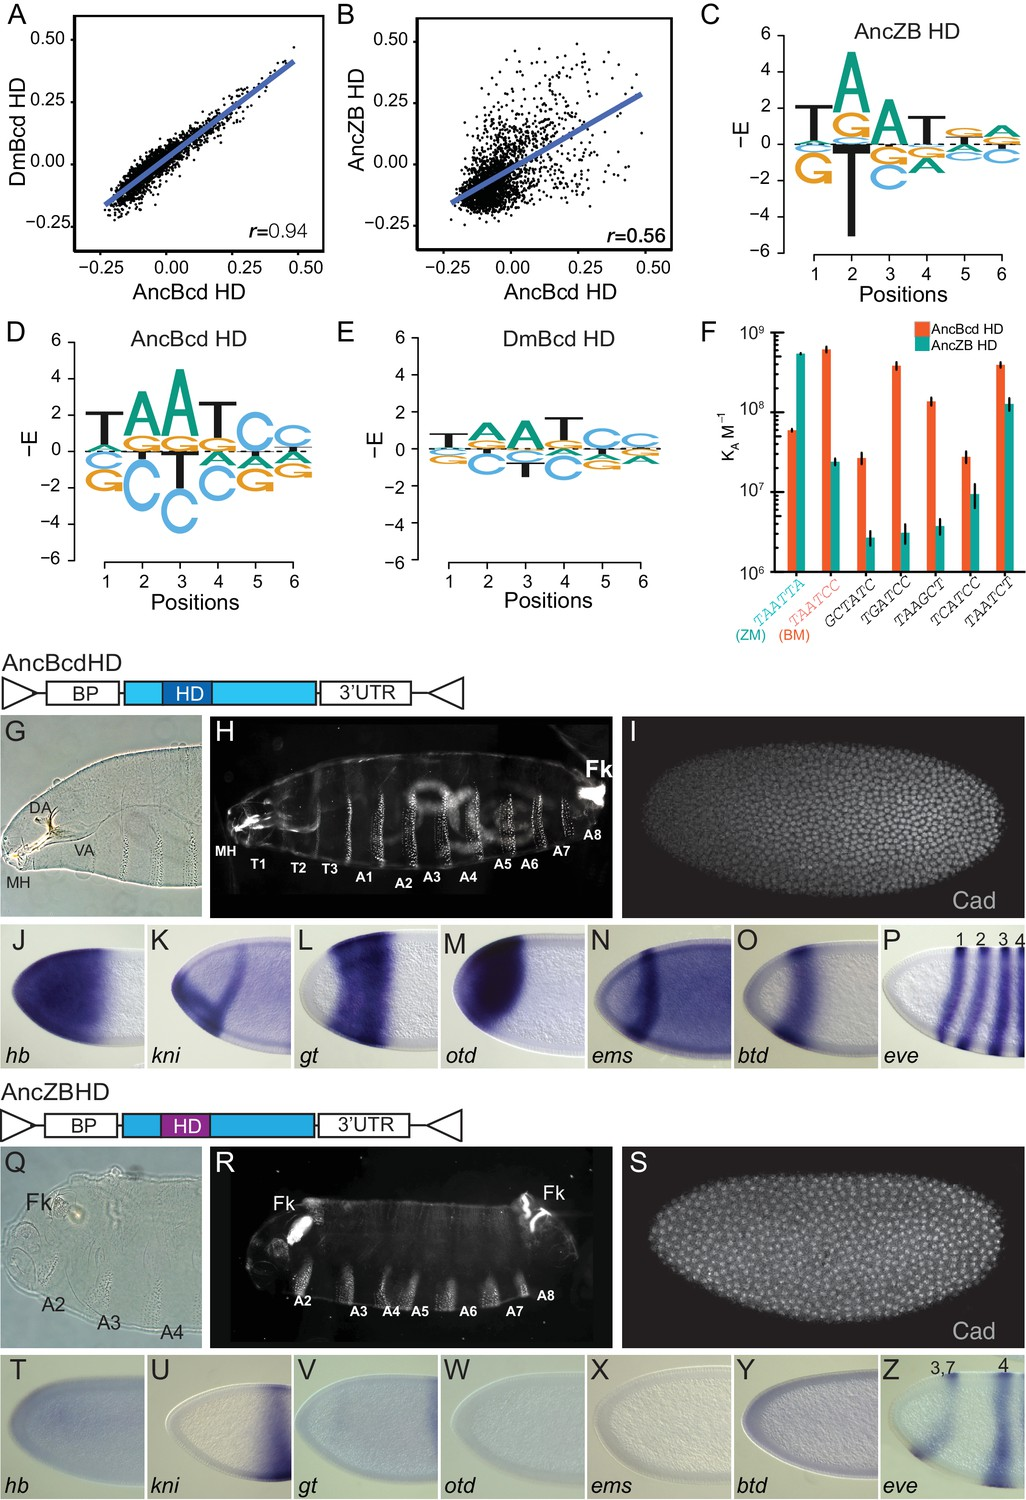 Ancient mechanisms for the evolution of the bicoid homeodomain's